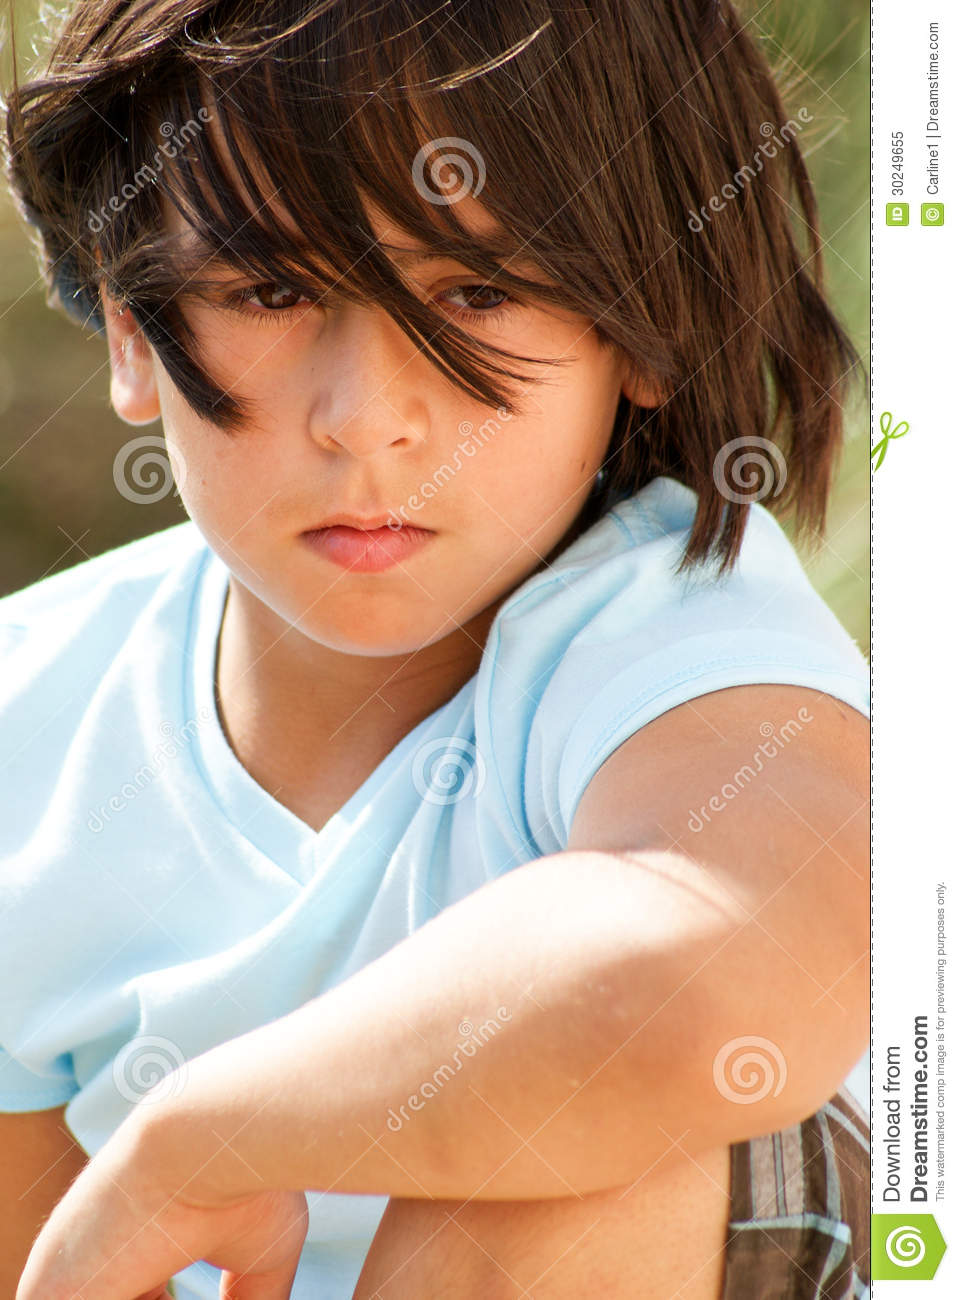 kid with problems royalty free stock photo